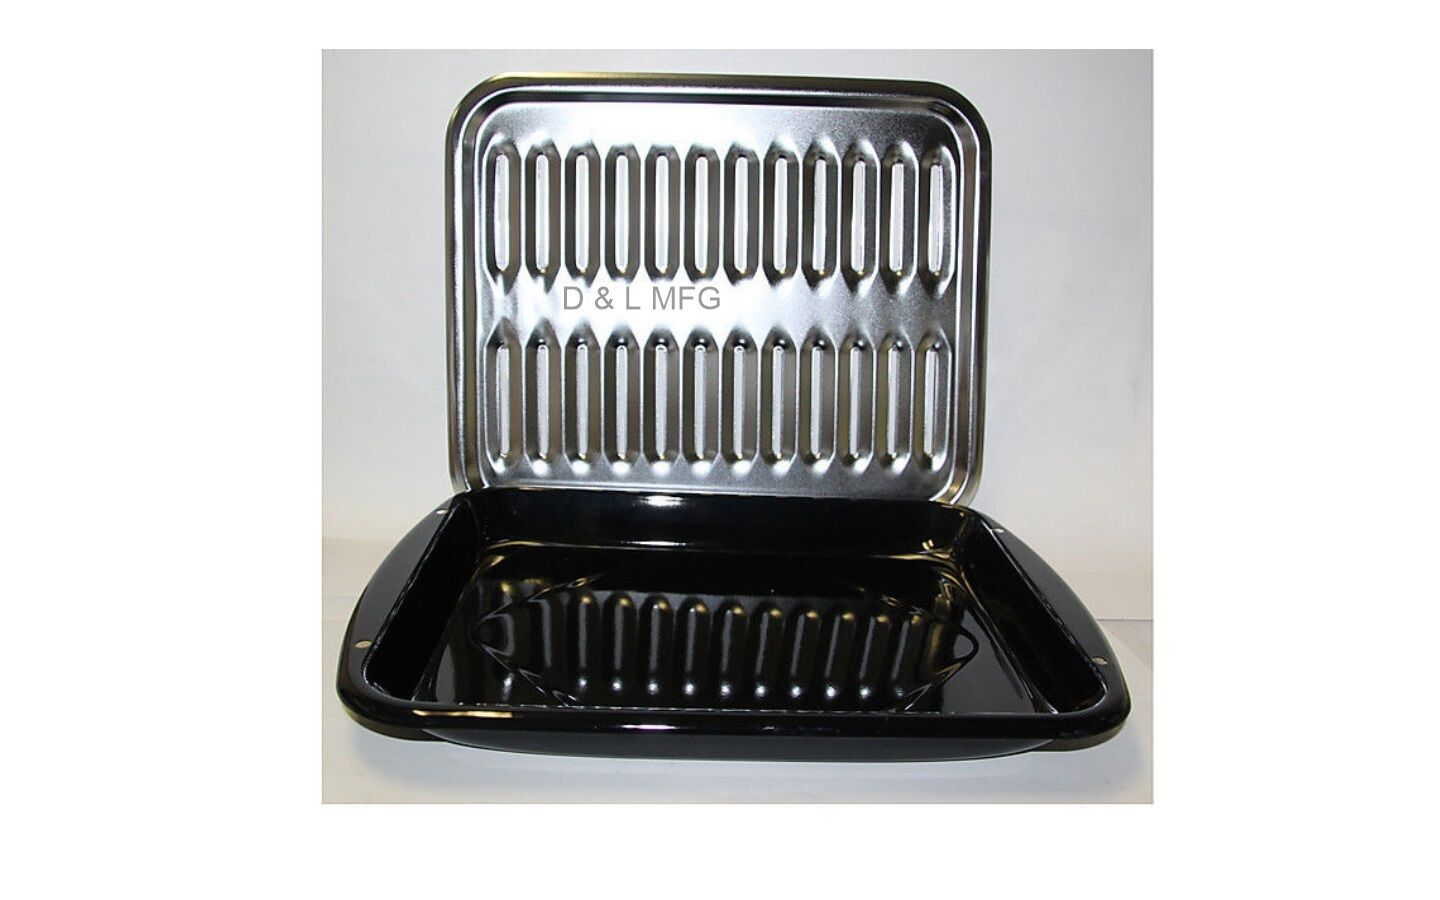 Porcelain Pan with Chrome Grill, boiler Pan PL